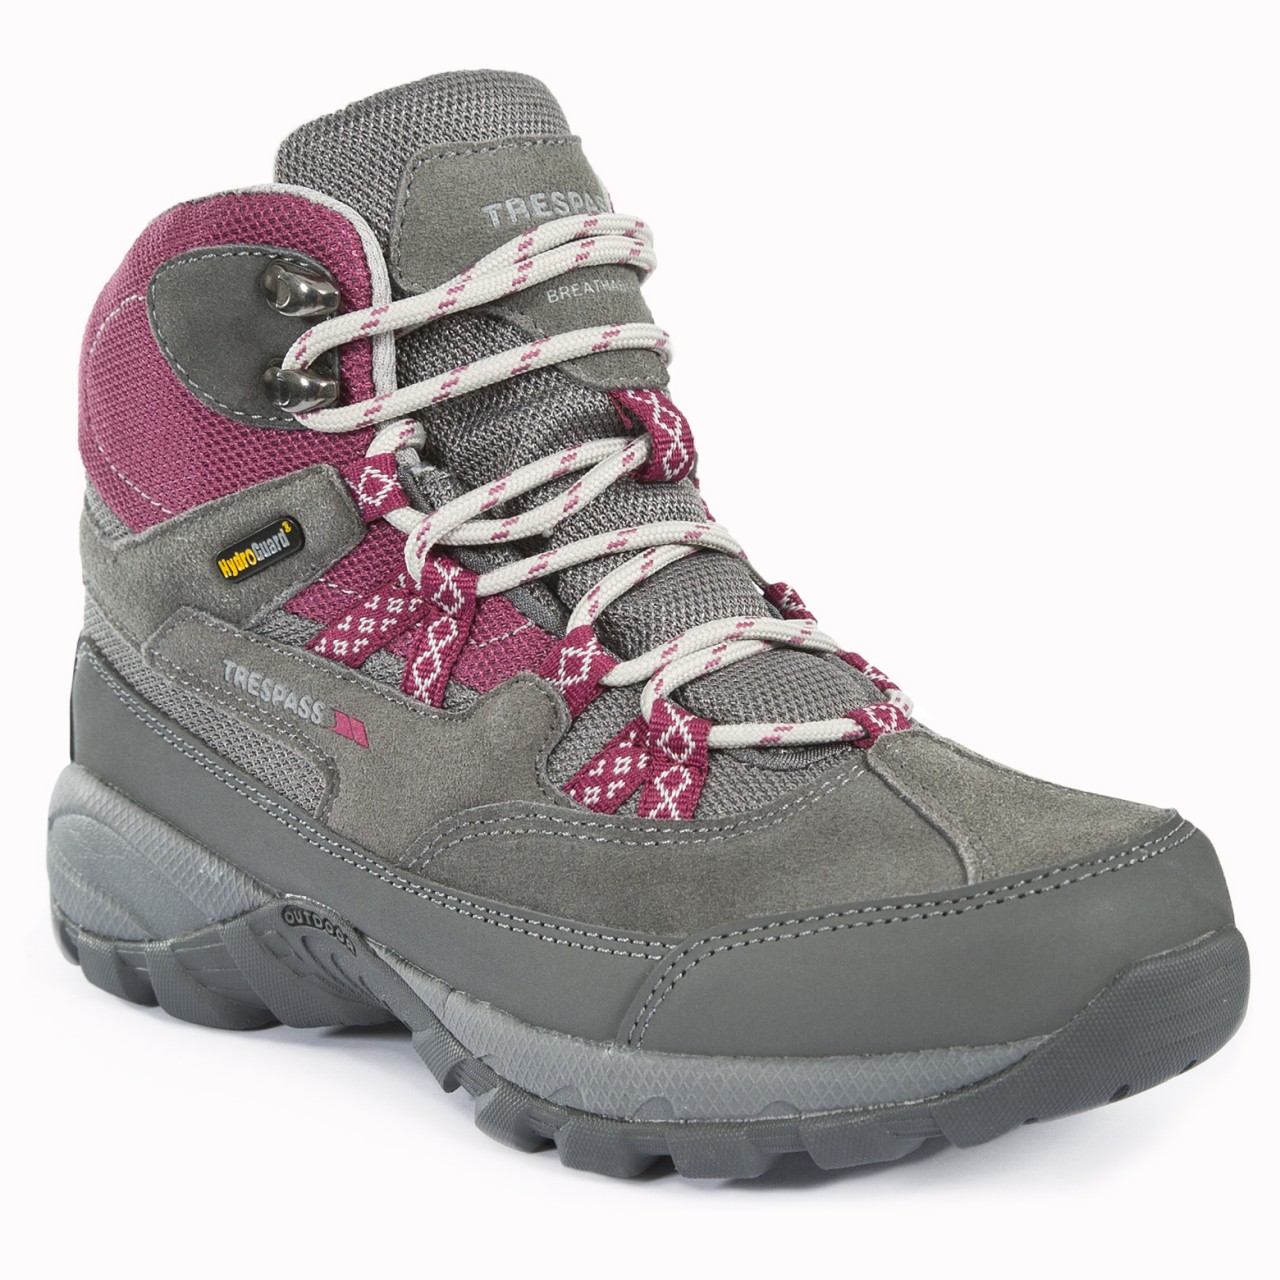 womens walking boots merse womenu0027s walking boots frost ... OBGQBJP